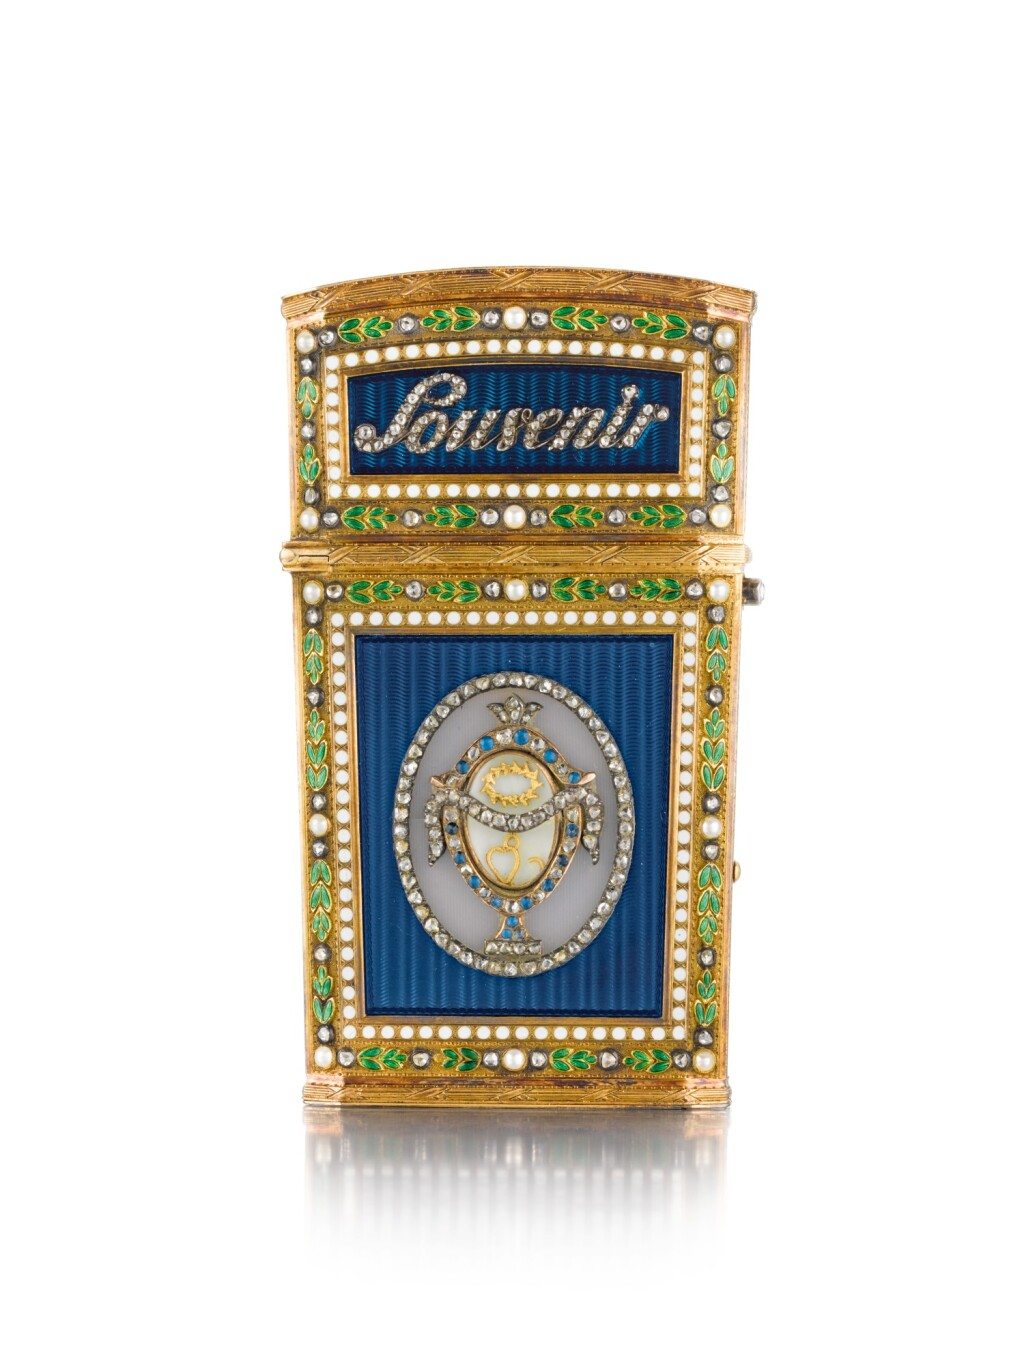 A JEWELLED GOLD AND ENAMEL SOUVENIR D'AMITIÉ, PROBABLY FRENCH, LATE 19TH CENTURY